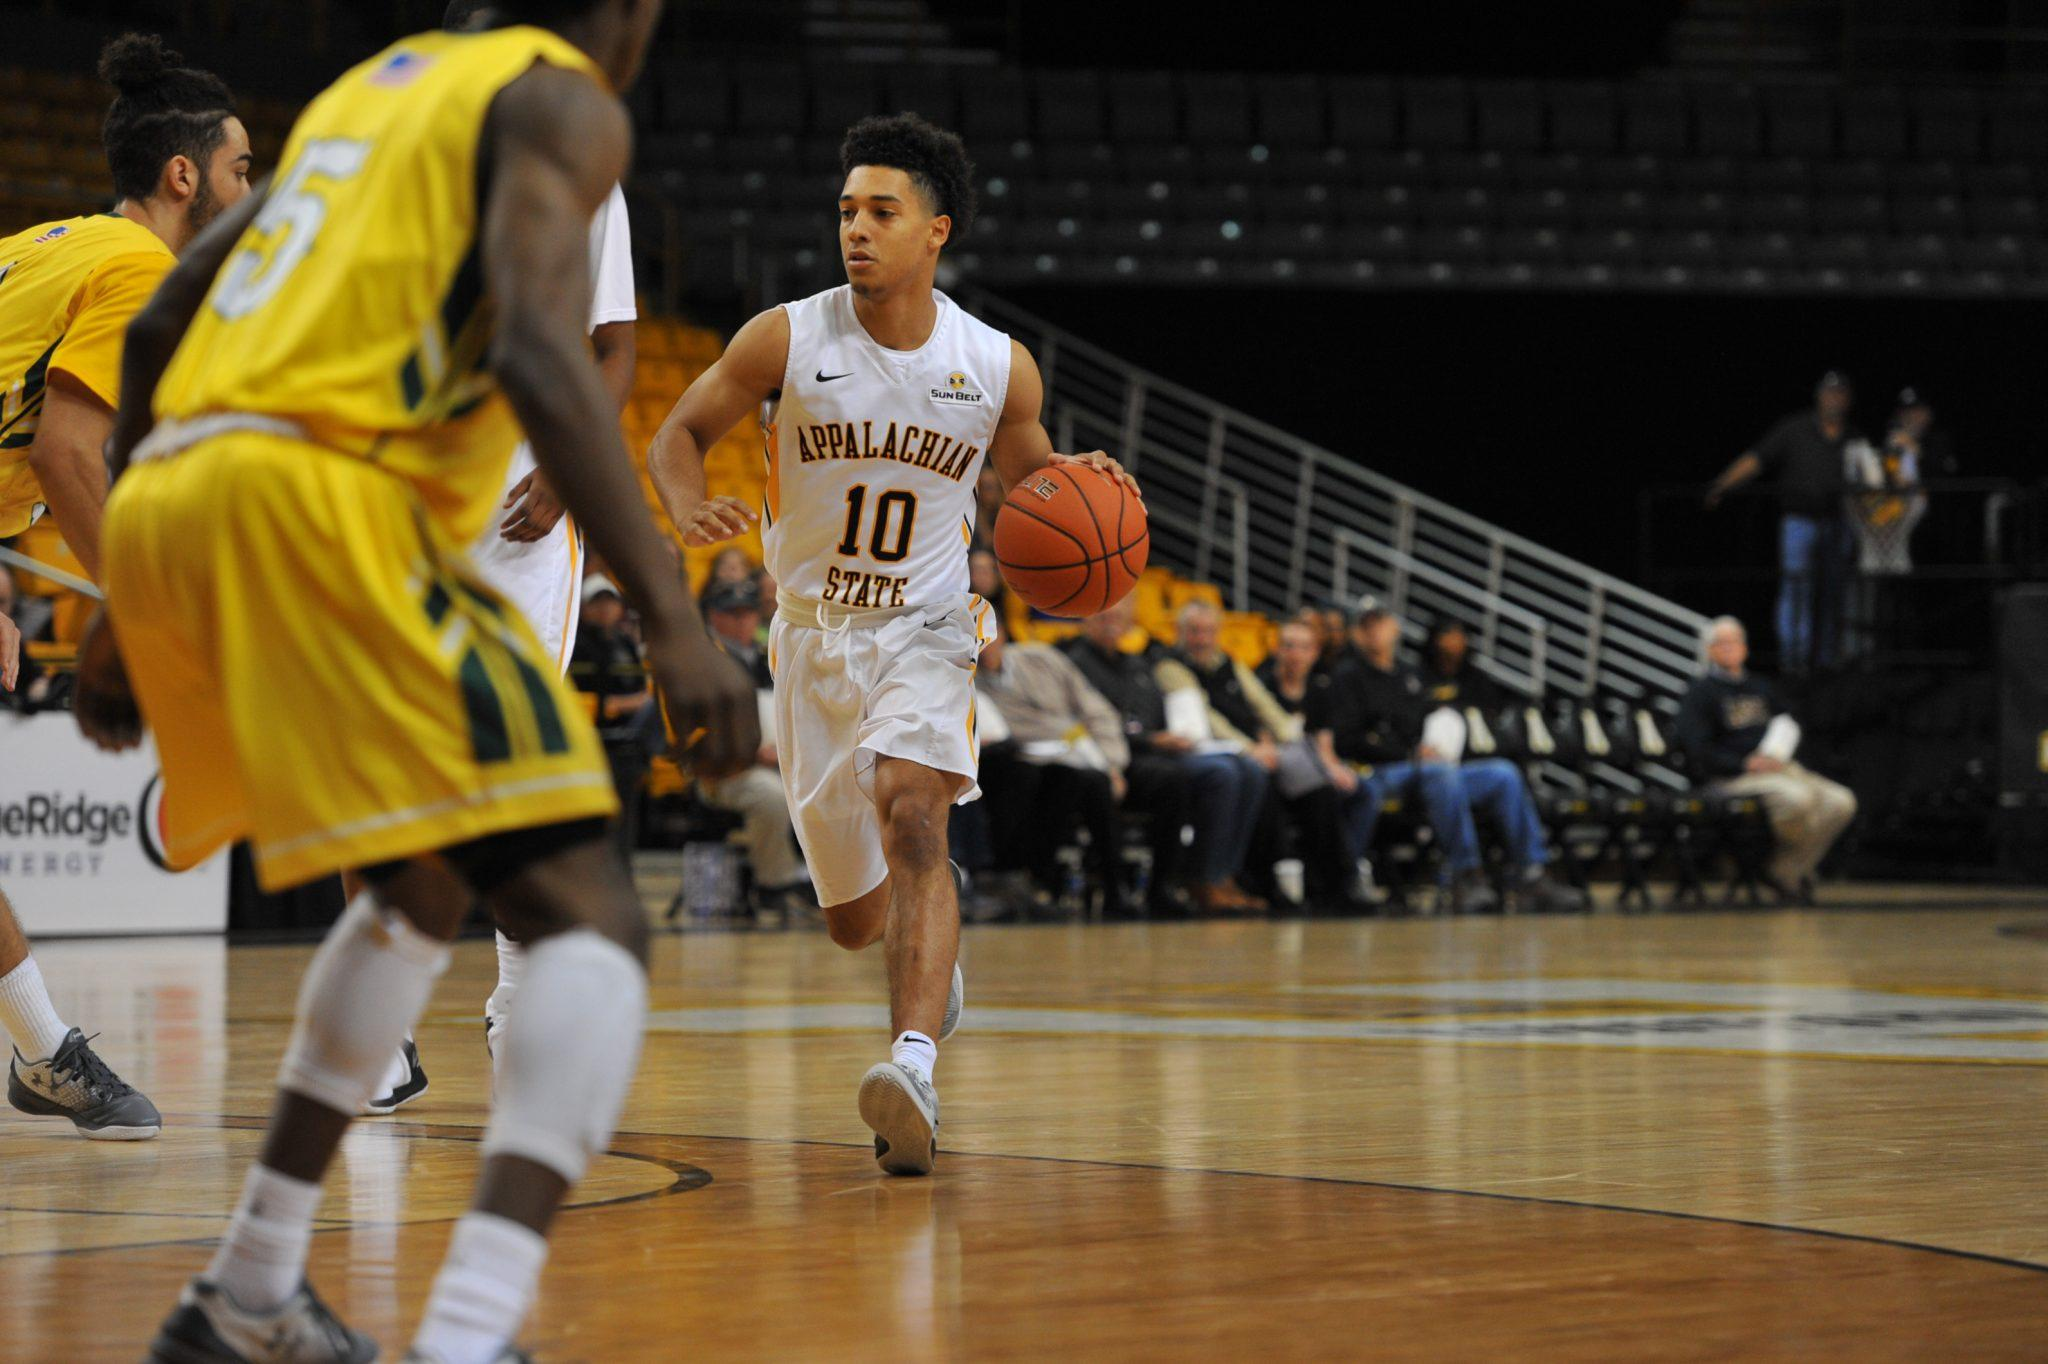 Freshman Patrick Good finished the night with 16 points. Photo courtesy: App State Athletics/ Dave Mayo